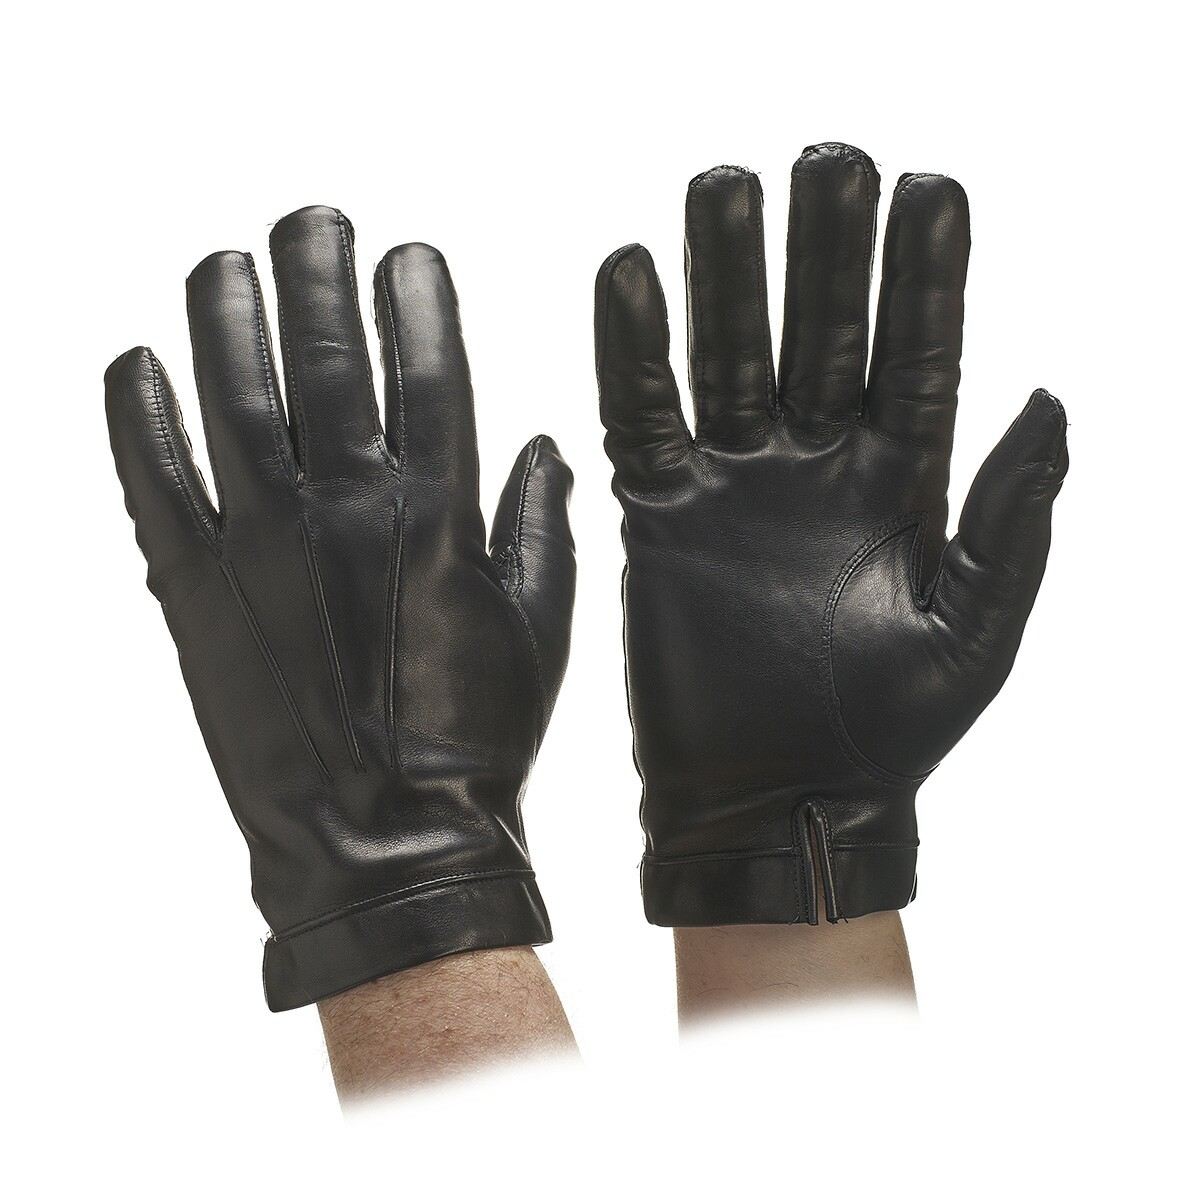 Black gloves online - Black Gloves Online 9